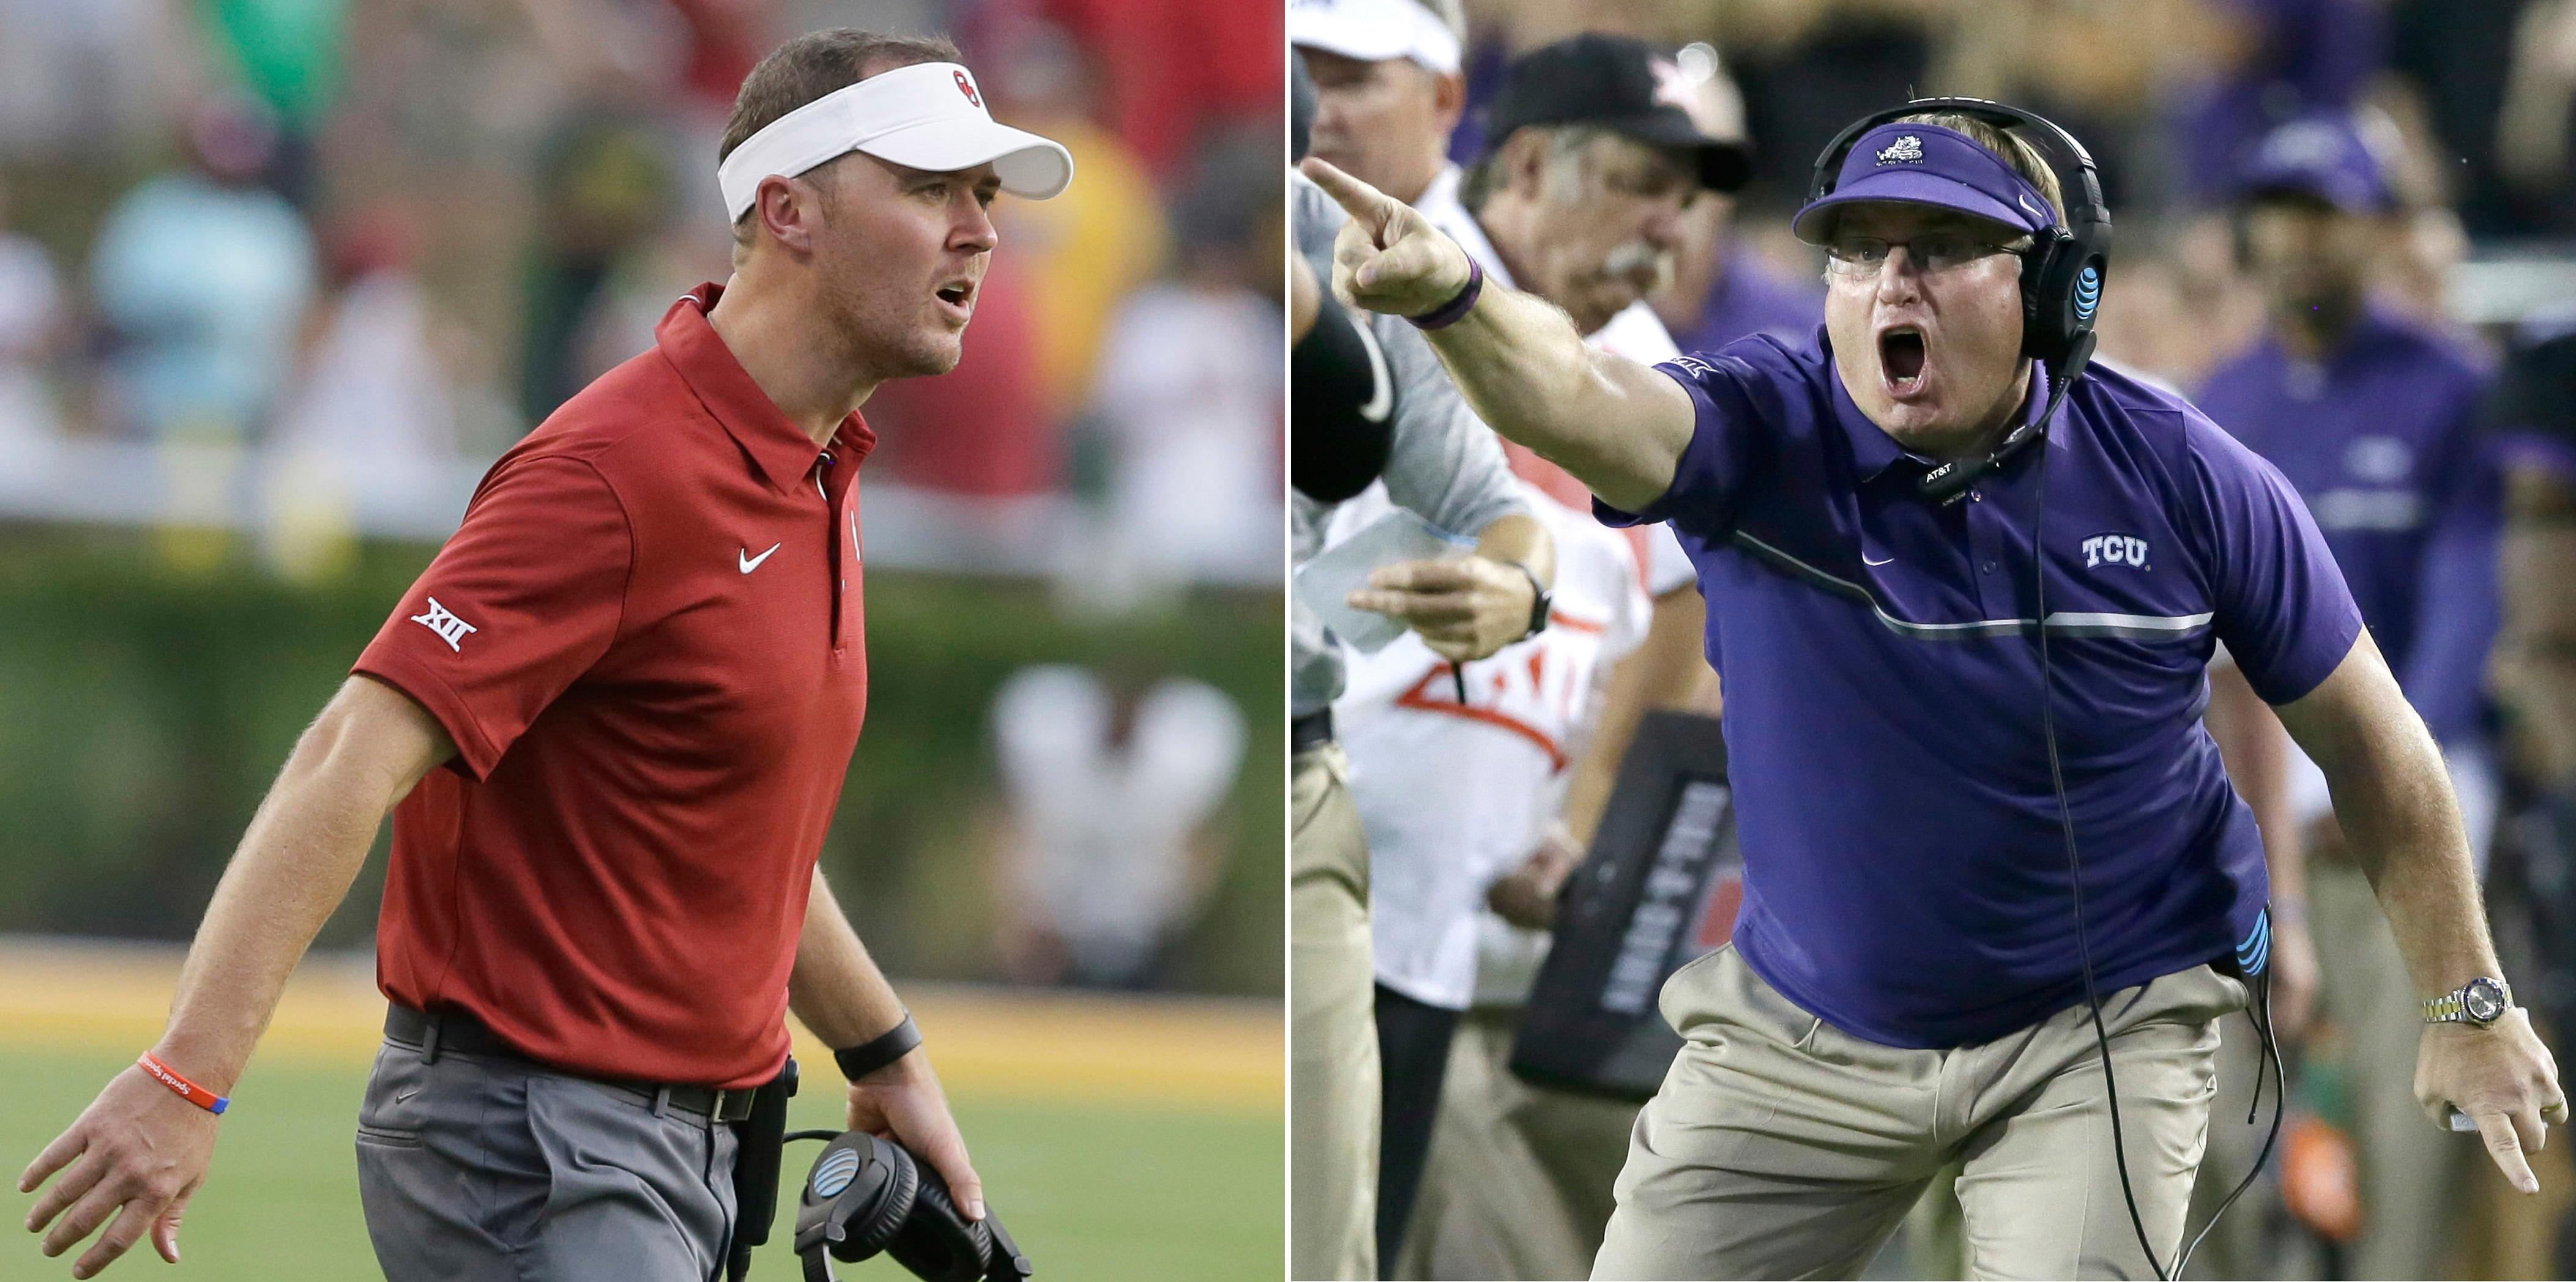 FILE - At left, in a Sept. 23, 2017, file photo, Oklahoma head coach Lincoln Riley looks on from the sidelines during the second half of an NCAA college football game against Baylor, in Waco, Texas. At right, in an Oct. 1, 2016, file photo, TCU head coach Gary Patterson yells during the second half of an NCAA college football game, in Fort Worth, Texas. TCU coach Gary Patterson doesn't believe it was an errant or accidental pass that hit safety Niko Small while going on the field for pregame warmups the last time the No. 10 Horned Frogs played No. 2 Oklahoma. Patterson also takes exception to how Sooners coach Lincoln Riley responded.  (AP Photo/FIle)